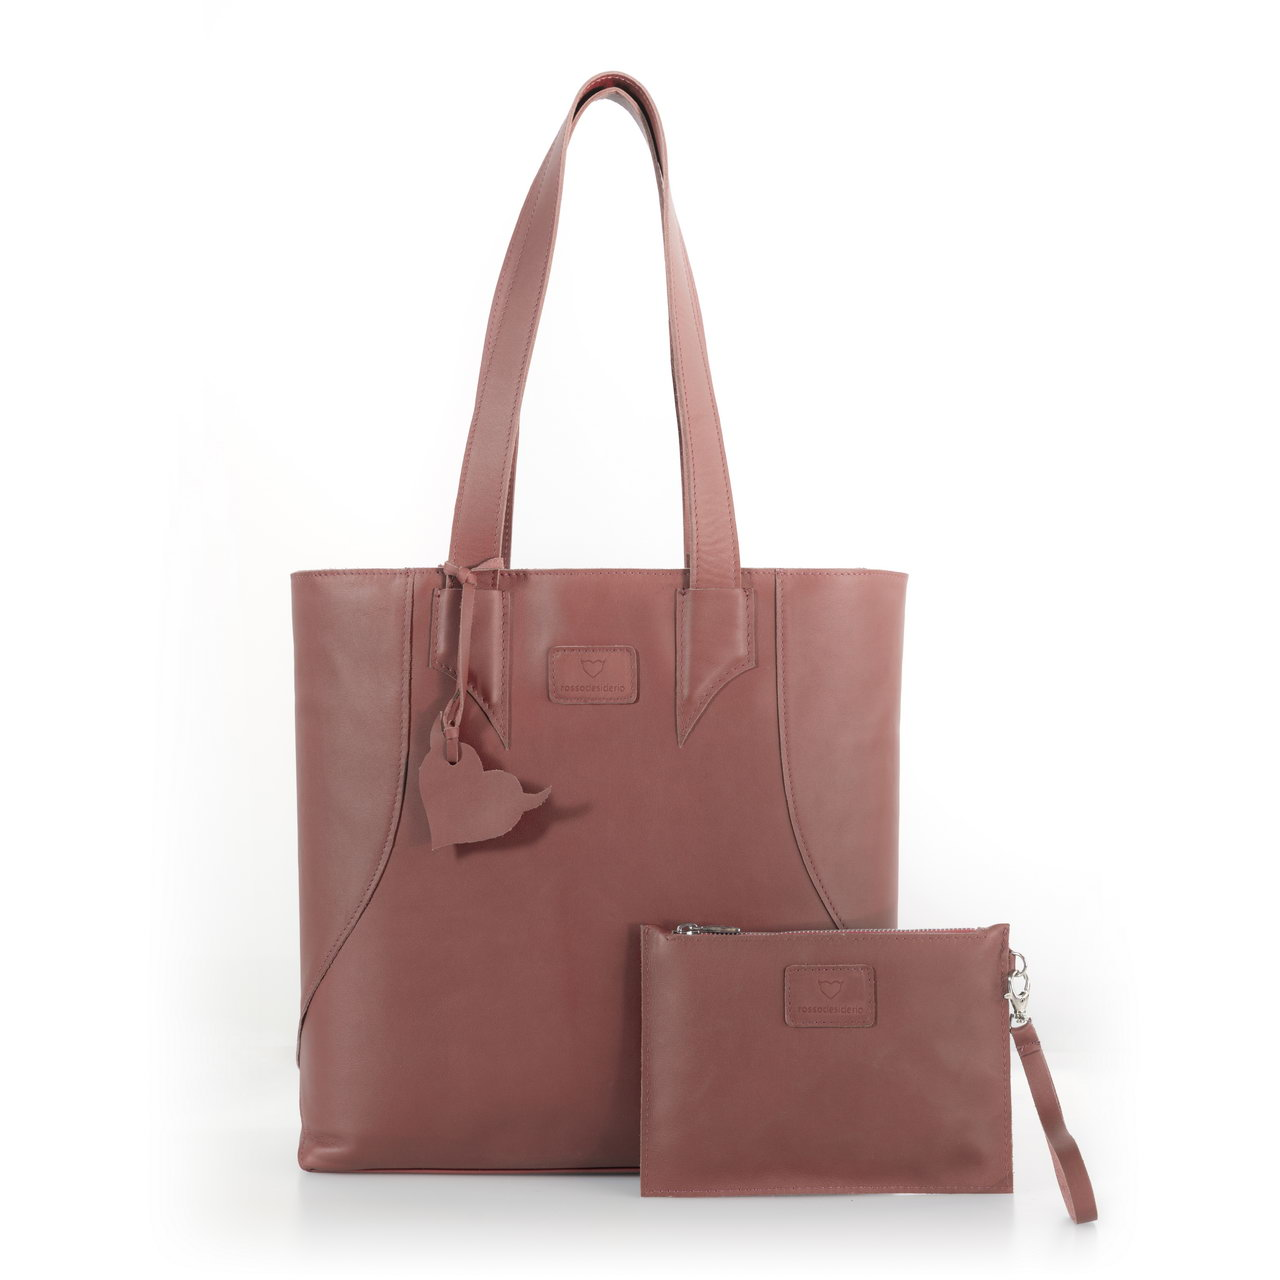 Brava Pink, shopper bag made with real leather